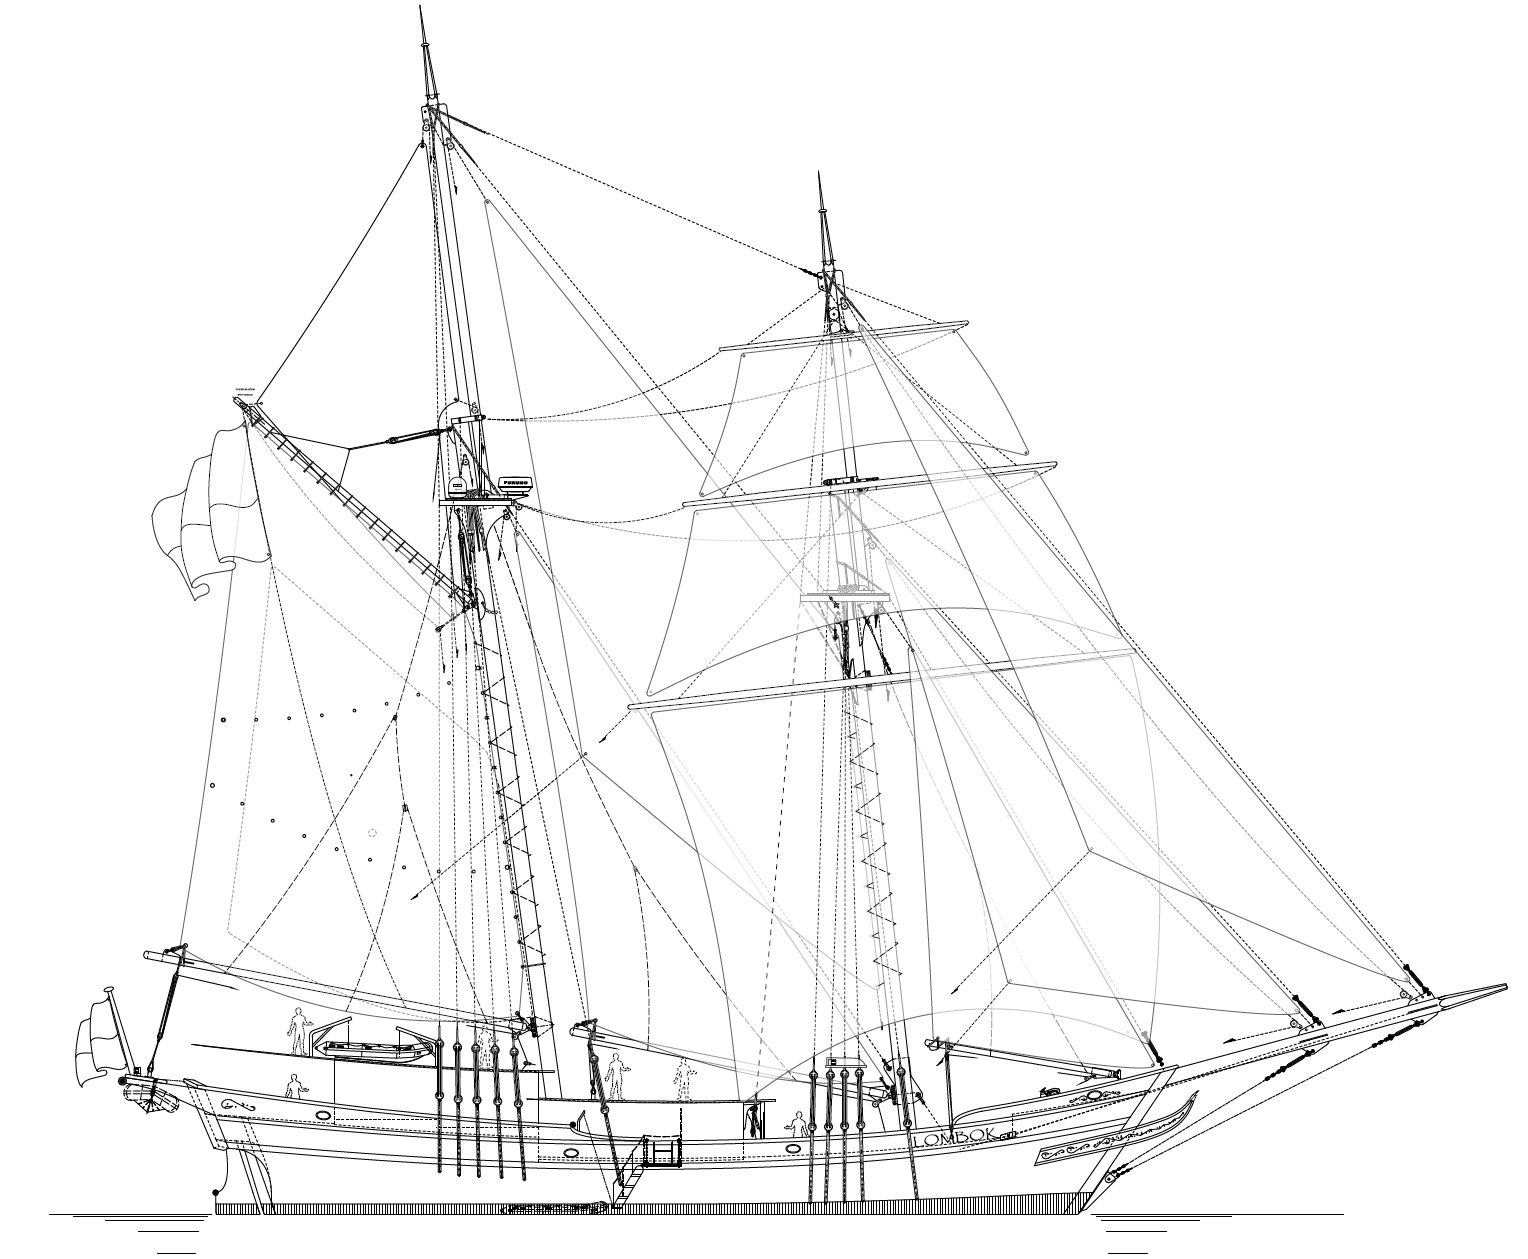 36m Lombok Privateer Sail Plan - Kasten Marine Design, Inc.